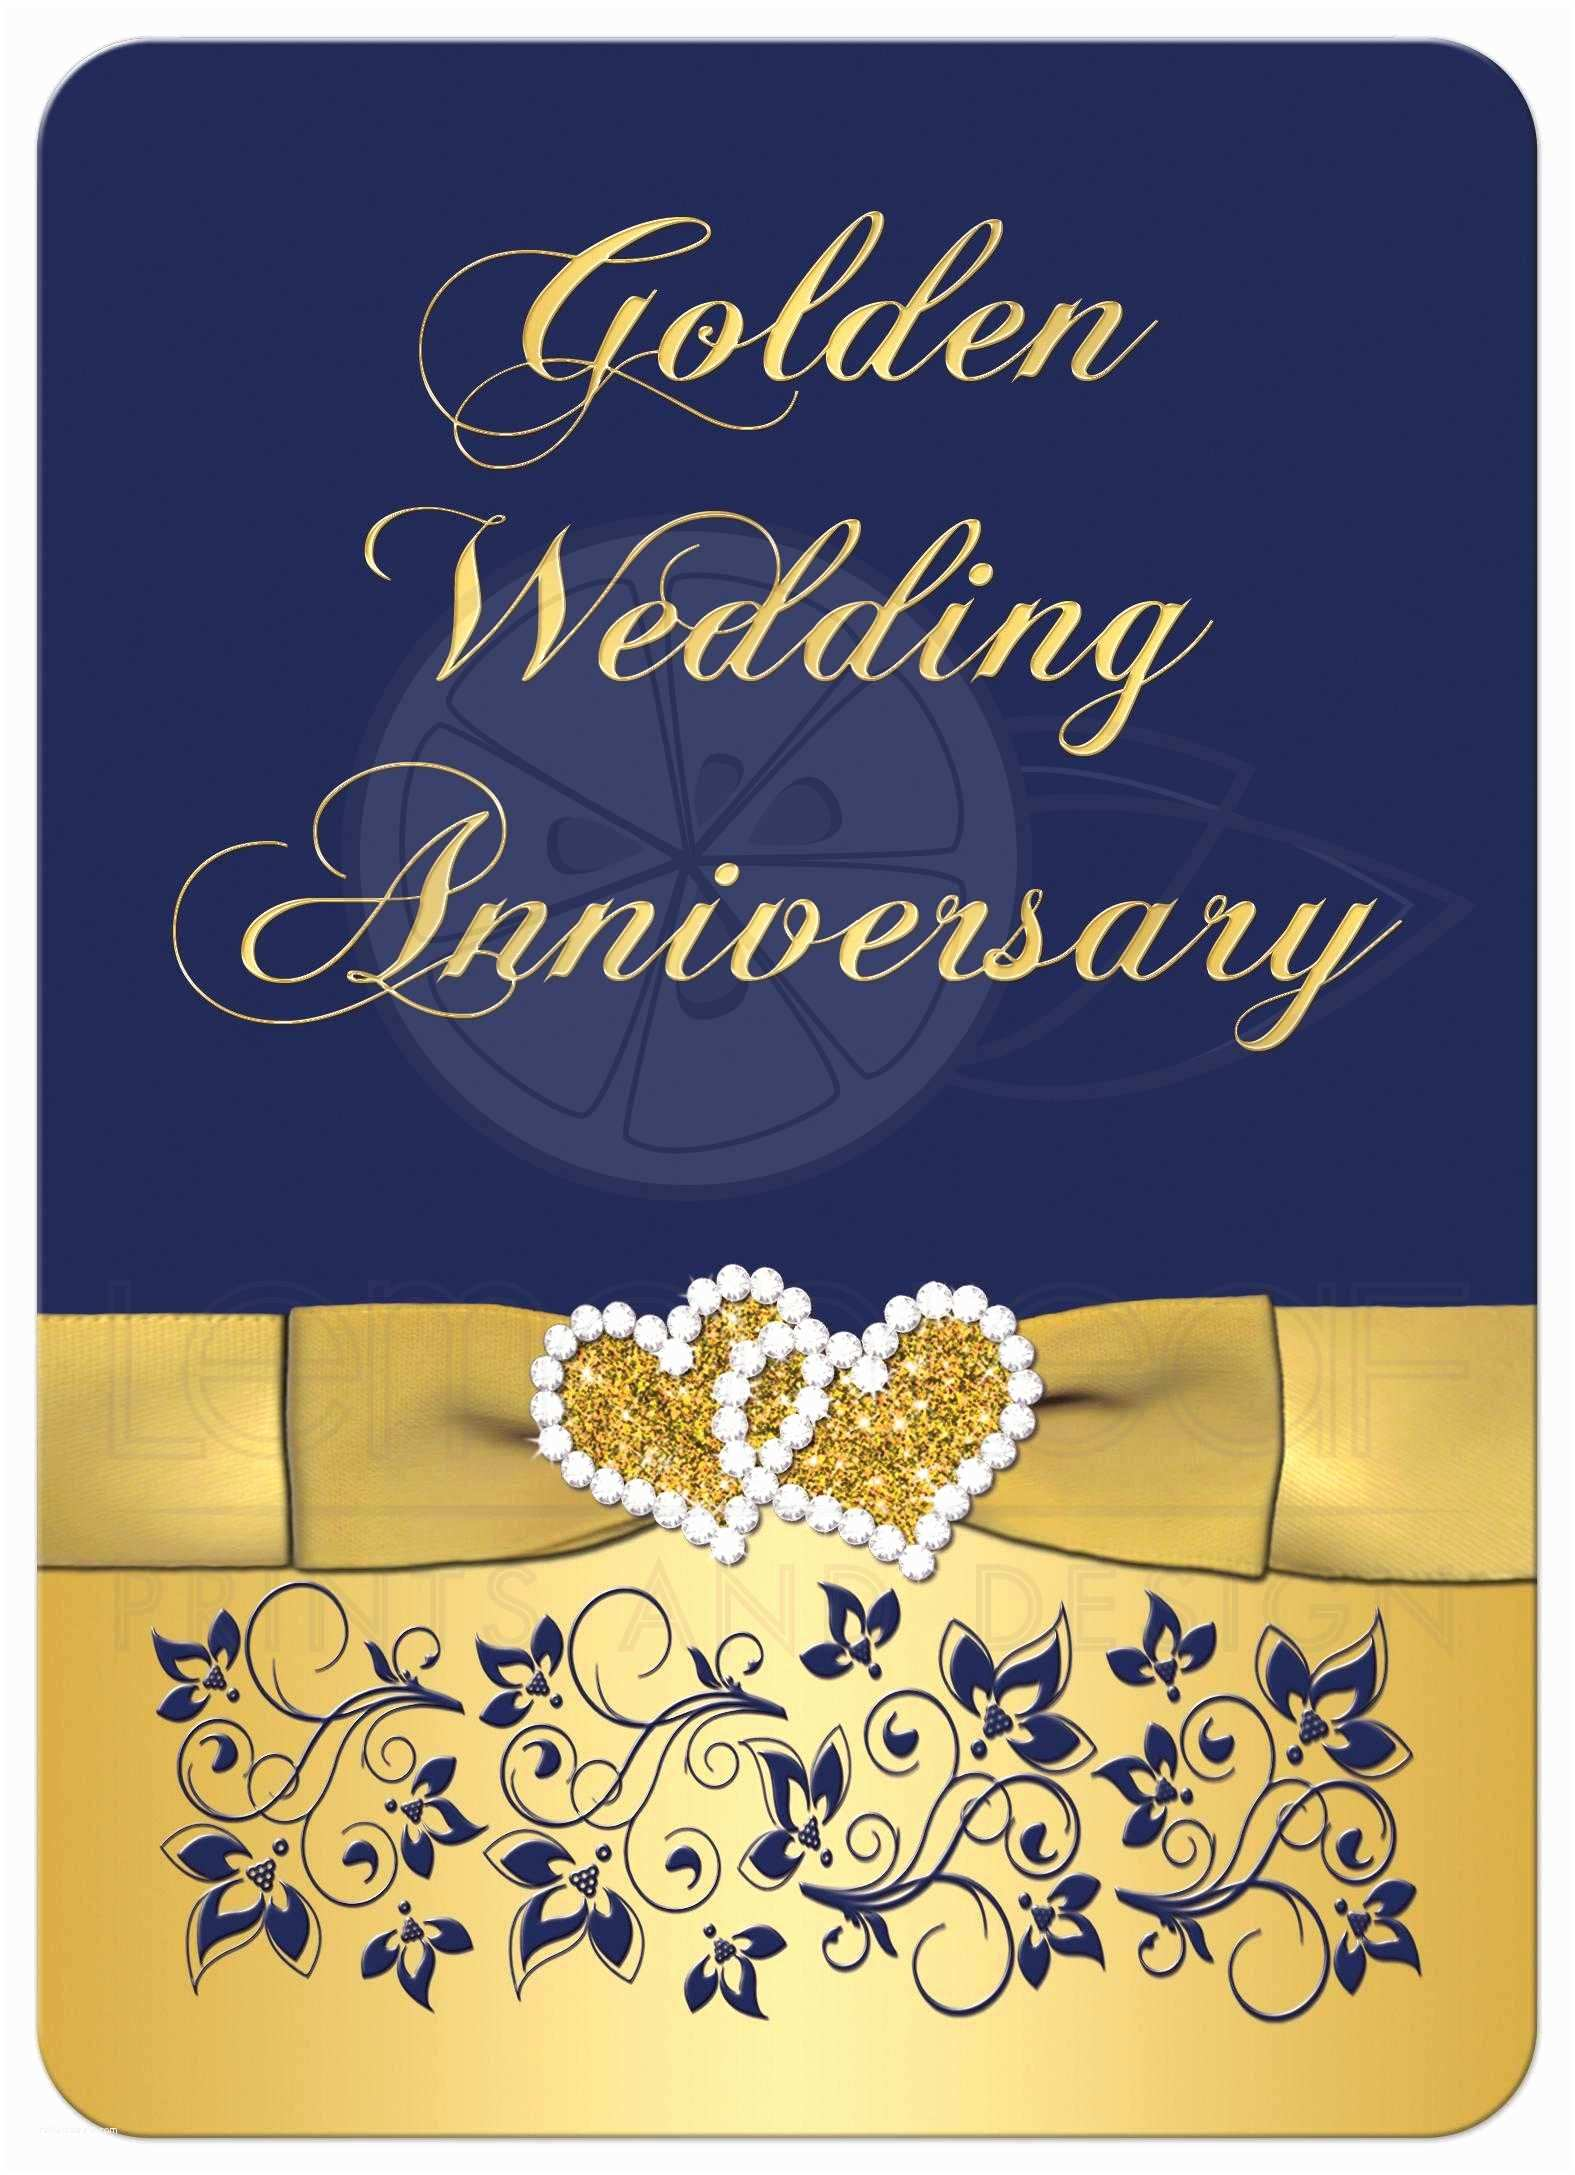 Golden Wedding Anniversary Invitations Golden Wedding Anniversary Invitation Golden Wedding